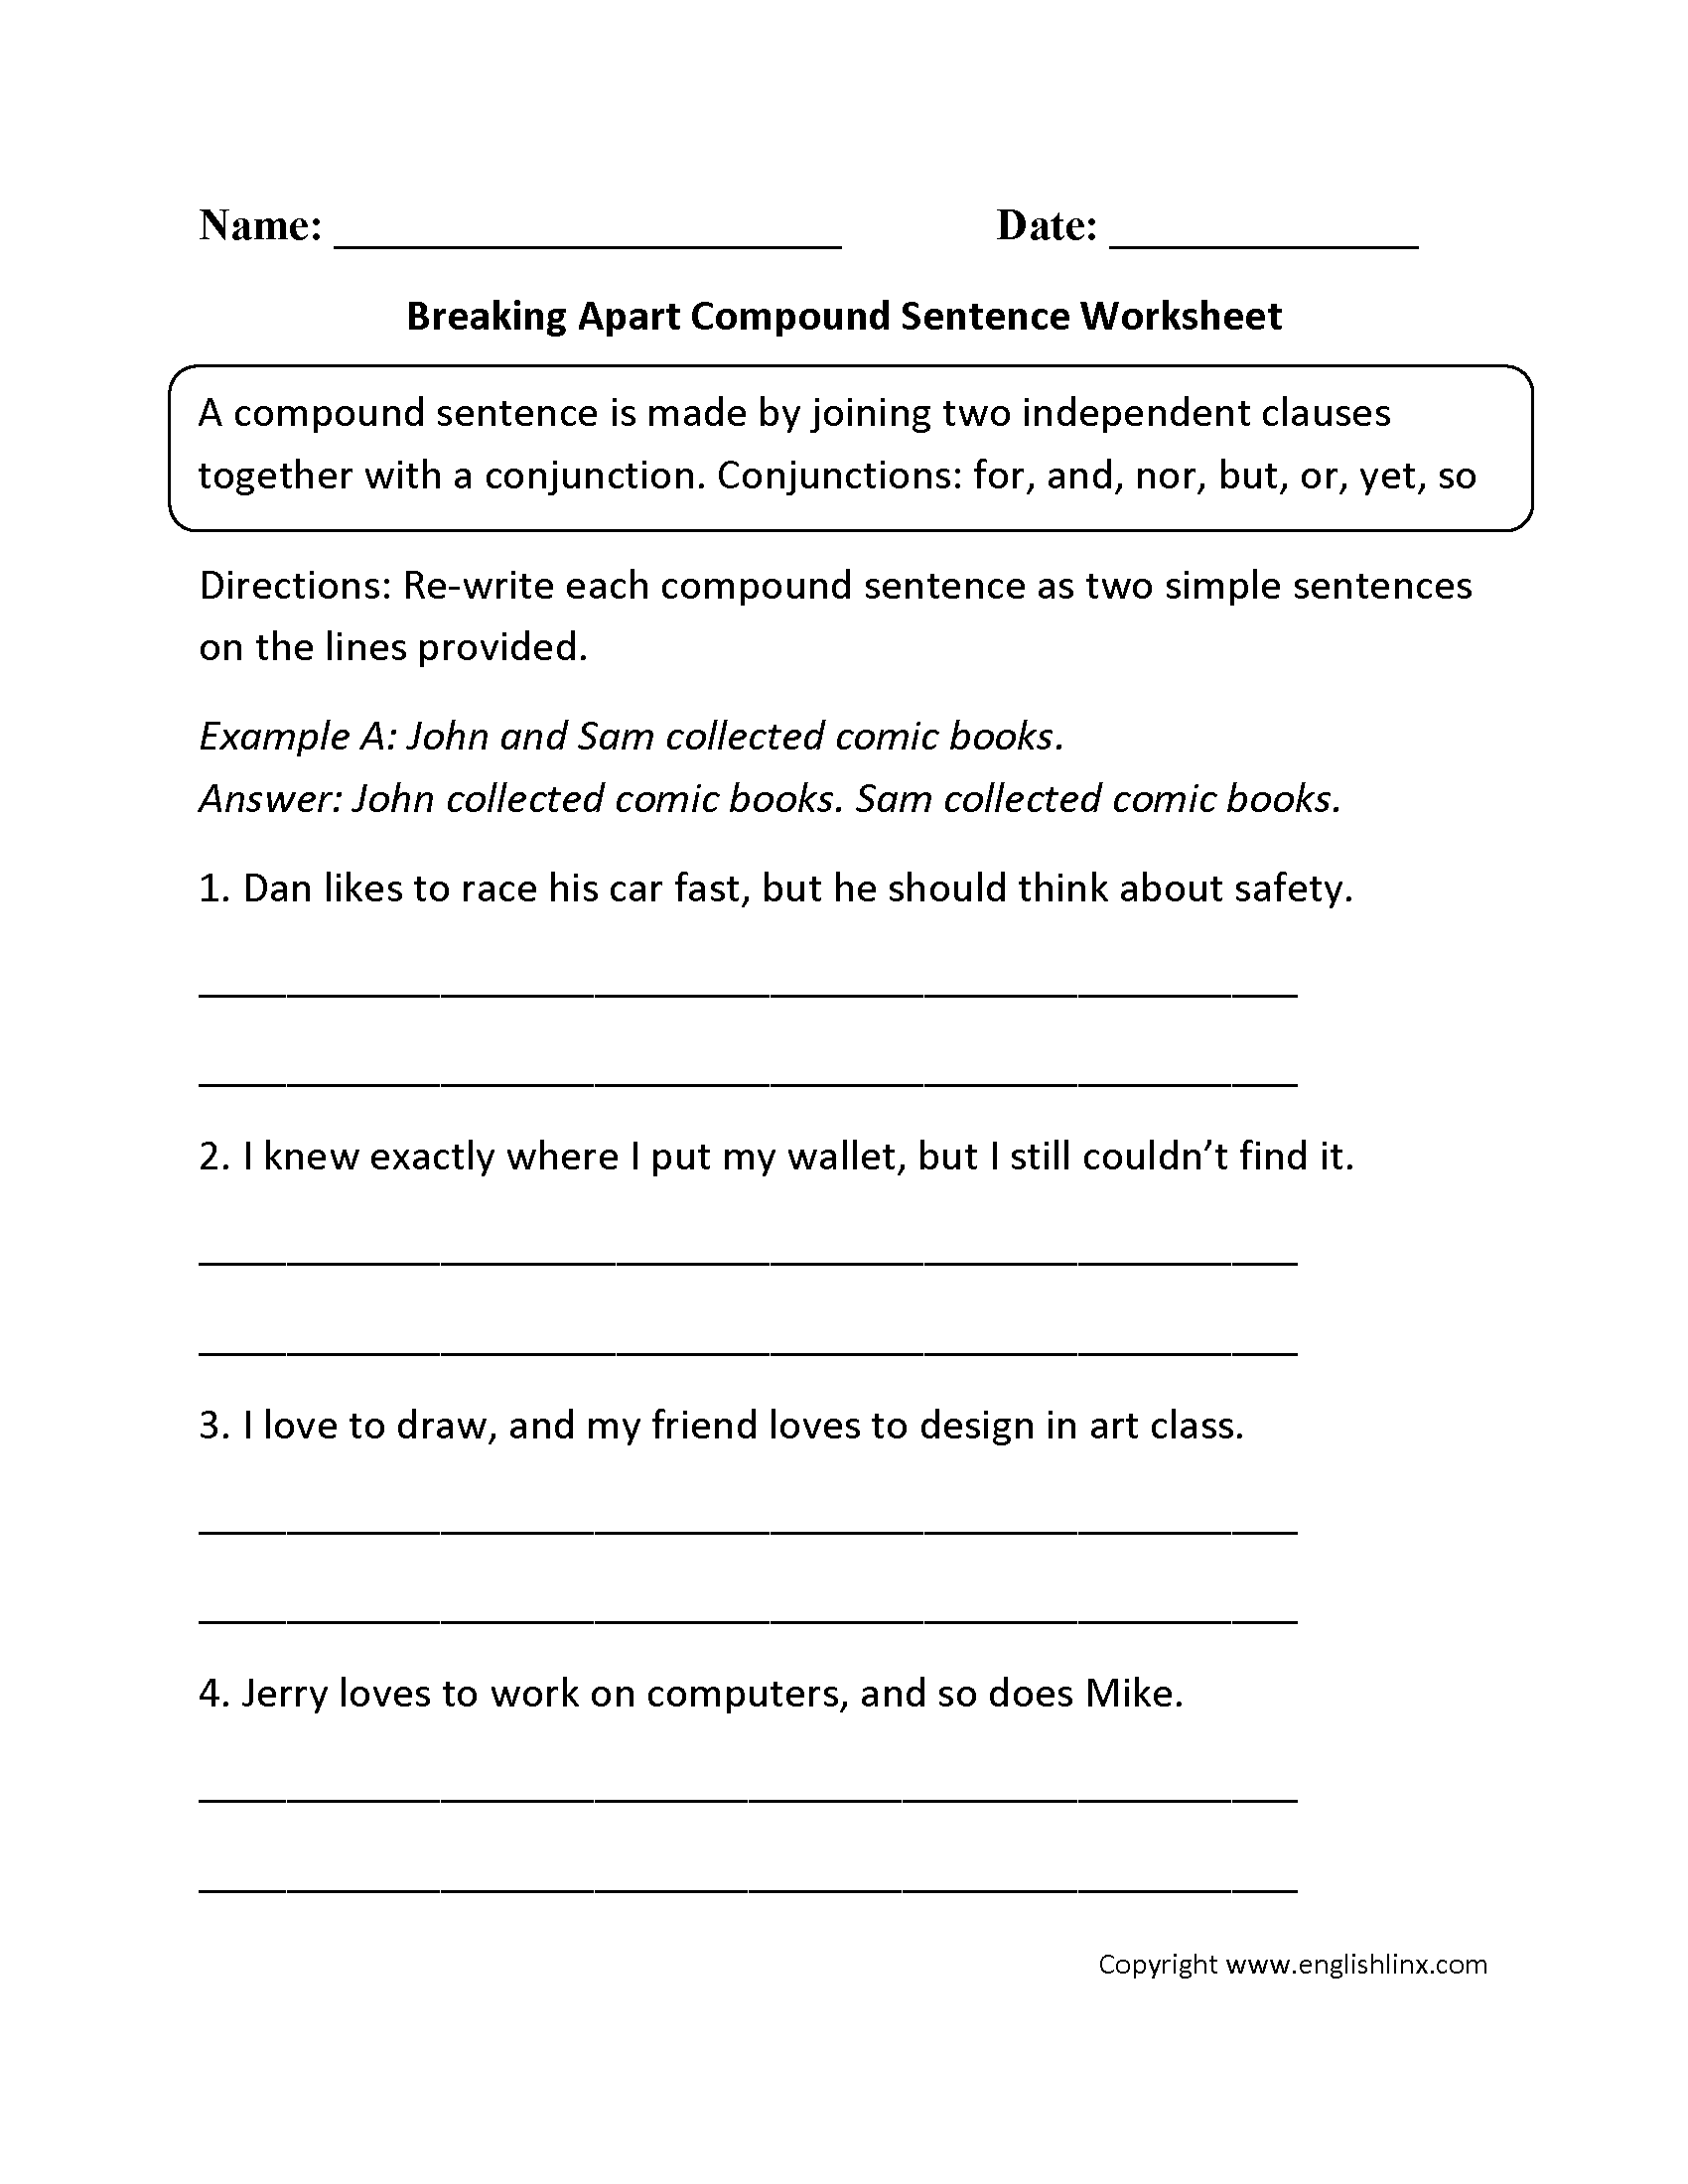 Sentence Structure Worksheets – 4 Types of Sentences Worksheet